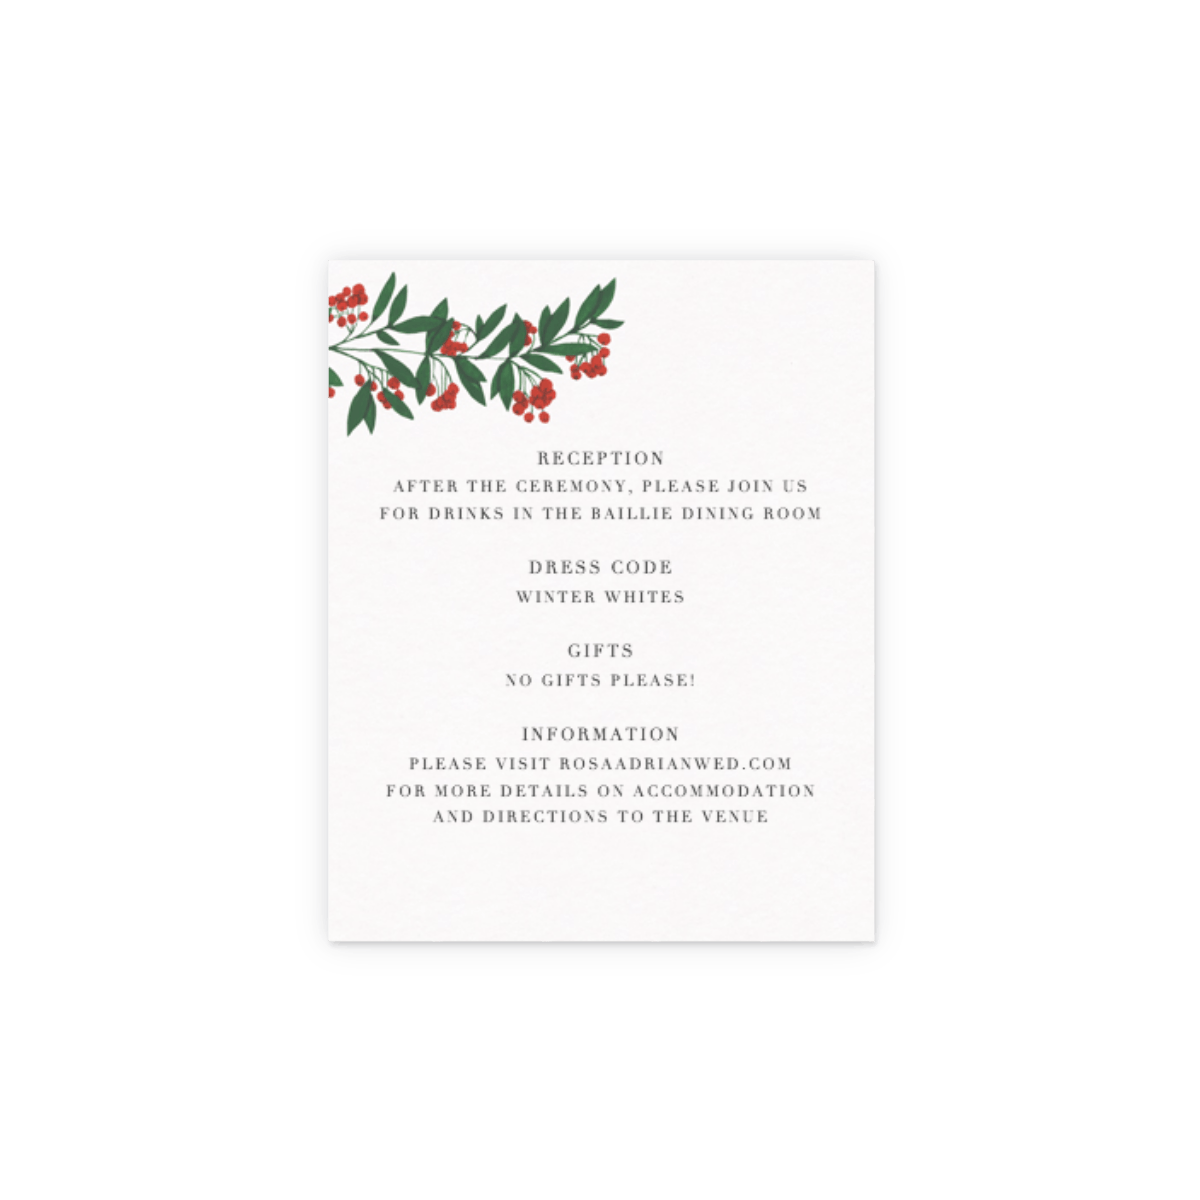 Https%3a%2f%2fwww.papier.com%2fproduct image%2f10319%2f9%2fwinter red berries 2633 info card 1474624378.png?ixlib=rb 1.1